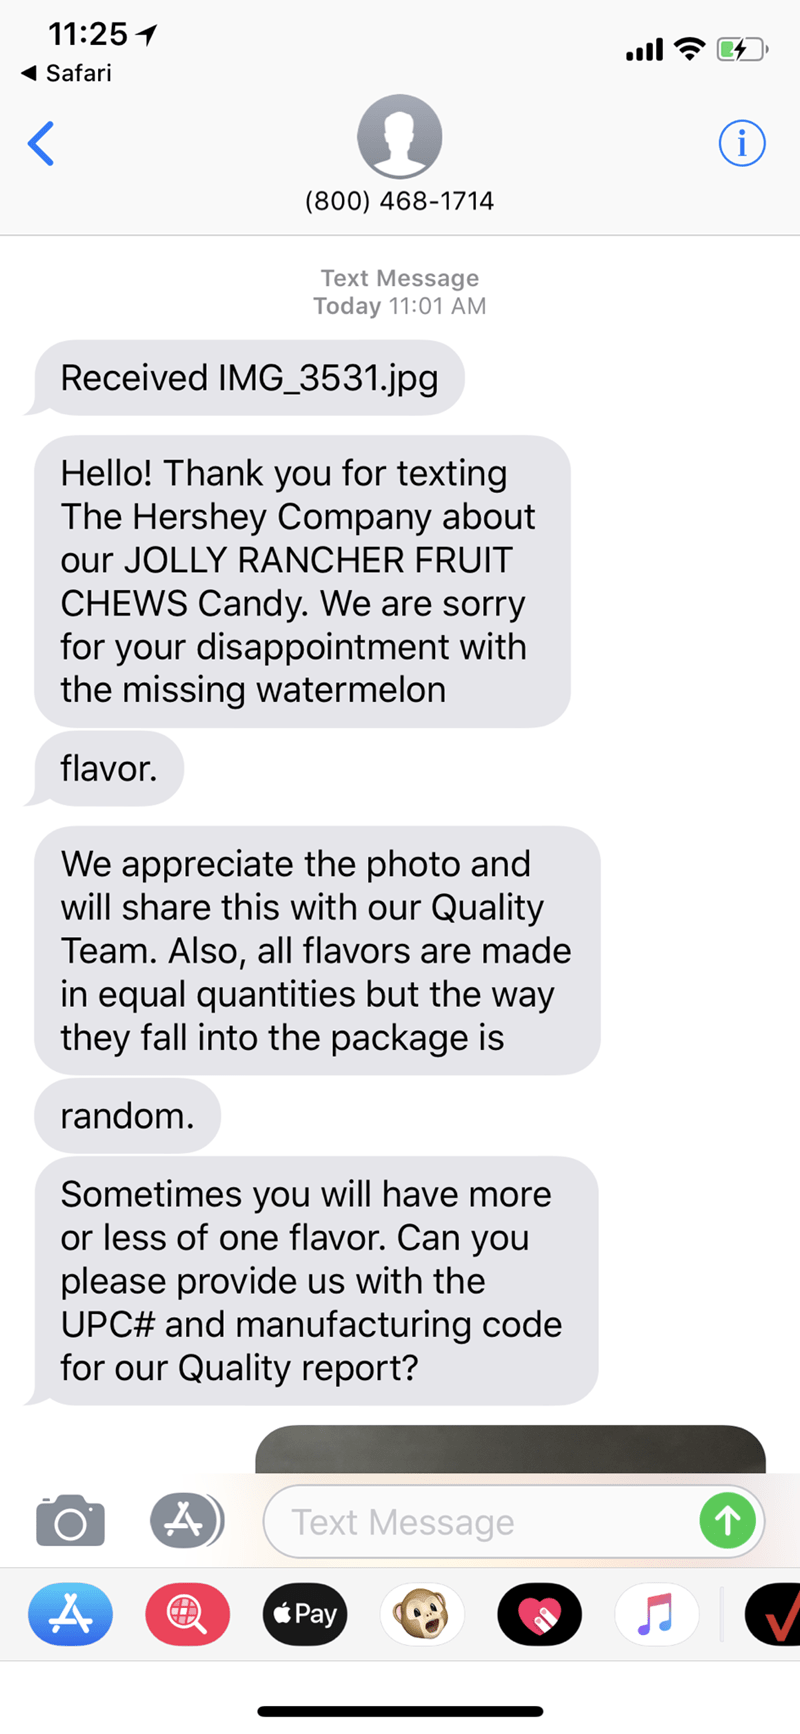 Text - 11:25 Safari < i (800) 468-1714 Text Message Today 11:01 AM Received IMG_3531.jpg Hello! Thank you for texting The Hershey Company about our JOLLY RANCHER FRUIT CHEWS Candy. We are sorry for your disappointment with the missing watermelon flavor. We appreciate the photo and will share this with our Quality Team. Also, all flavors are made in equal quantities but the way they fall into the package is random. Sometimes you will have more or less of one flavor. Can you please provide us with